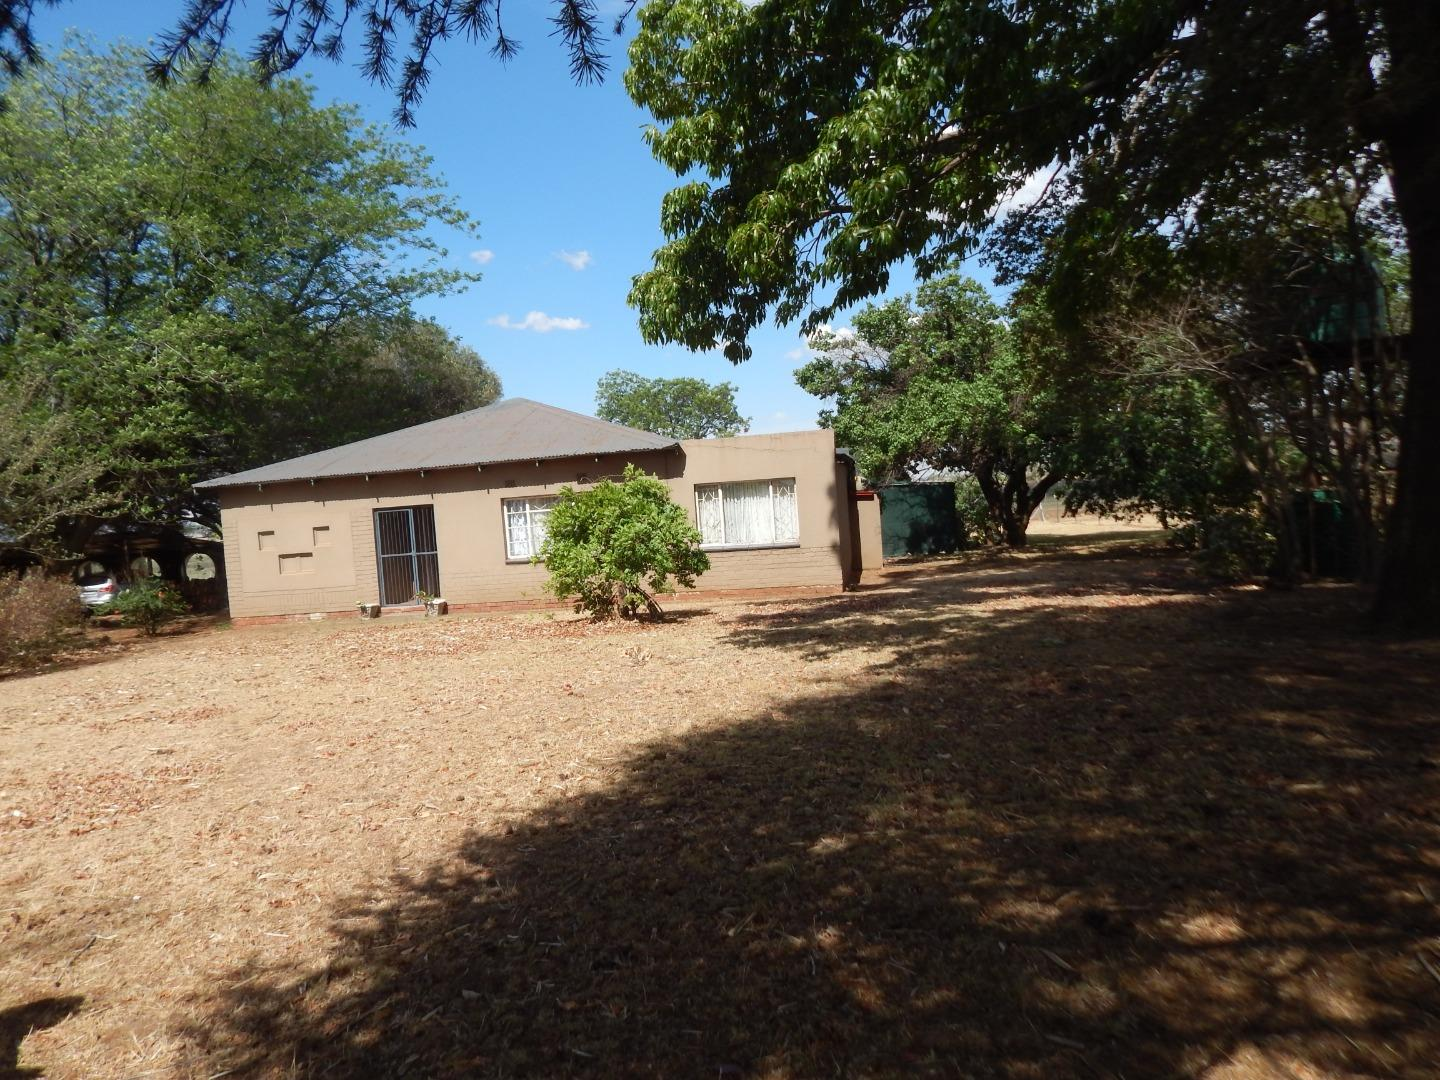 4 Bedroom House for Sale in Kookfontein, Meyerton - Gauteng